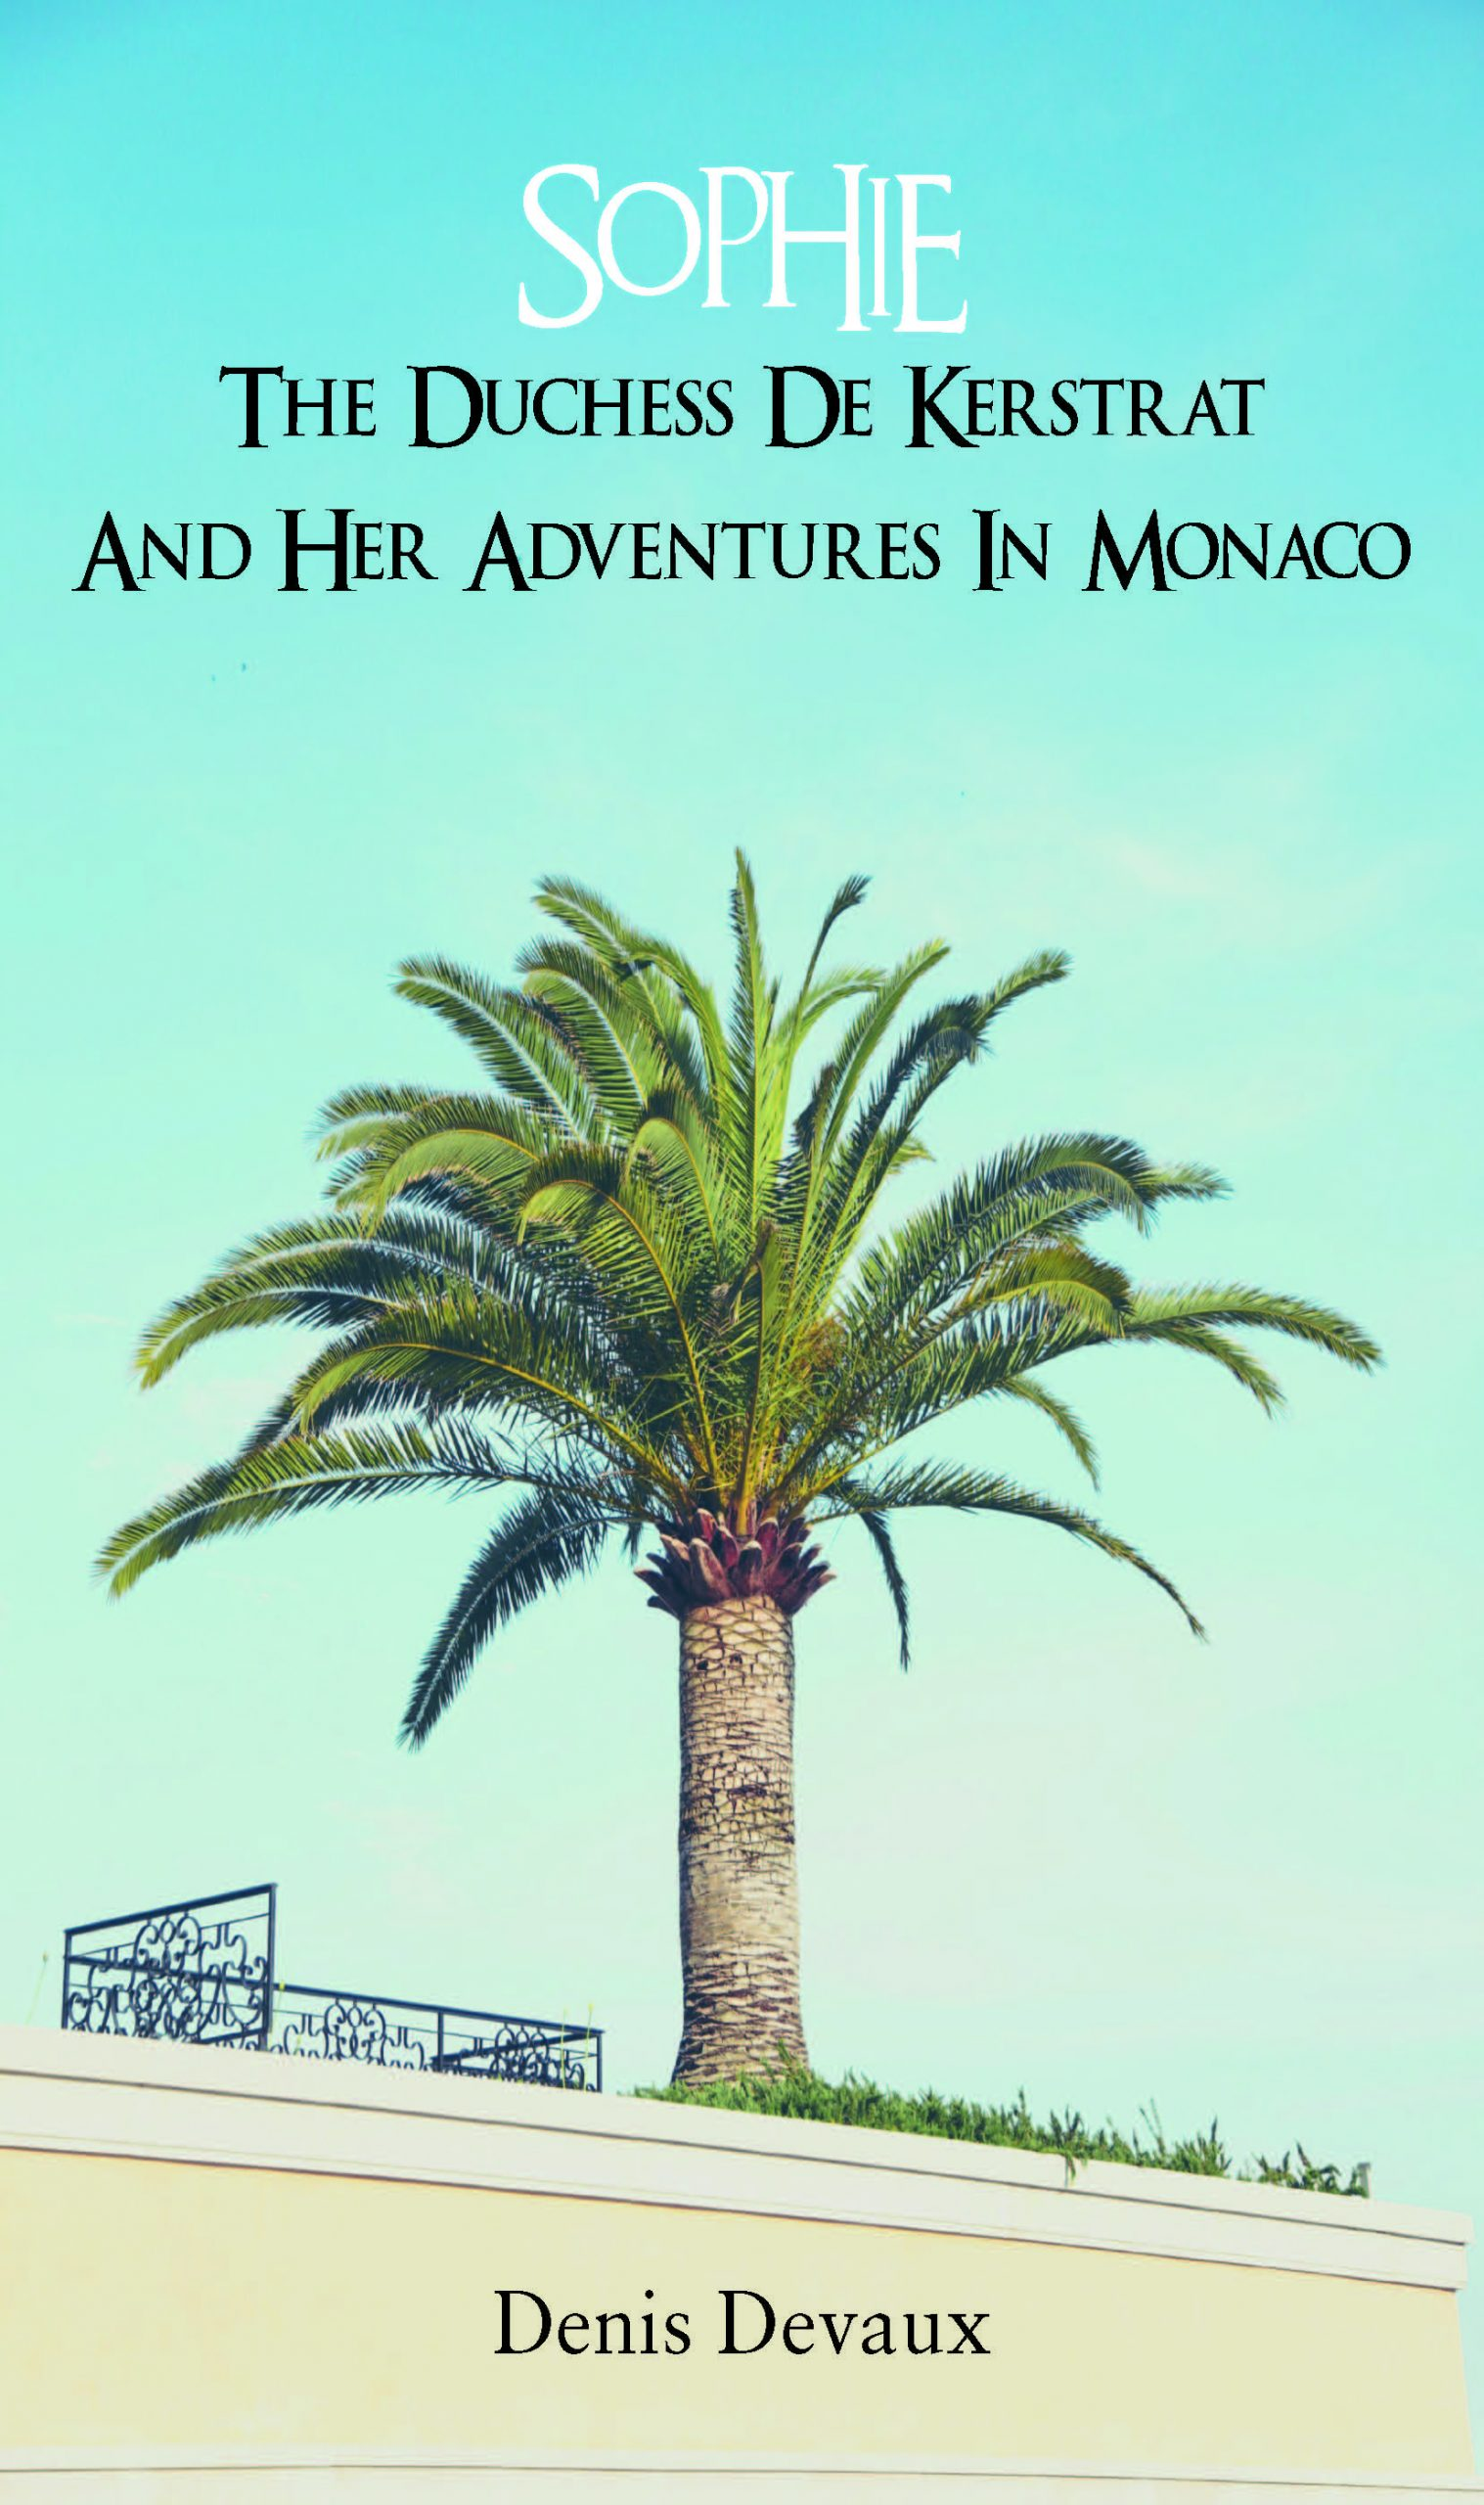 """""""Sophie: The Duchess De Kerstrat and Her Adventures in Monaco"""" by Denis Devaux is published by Grosvenor House Publishing"""